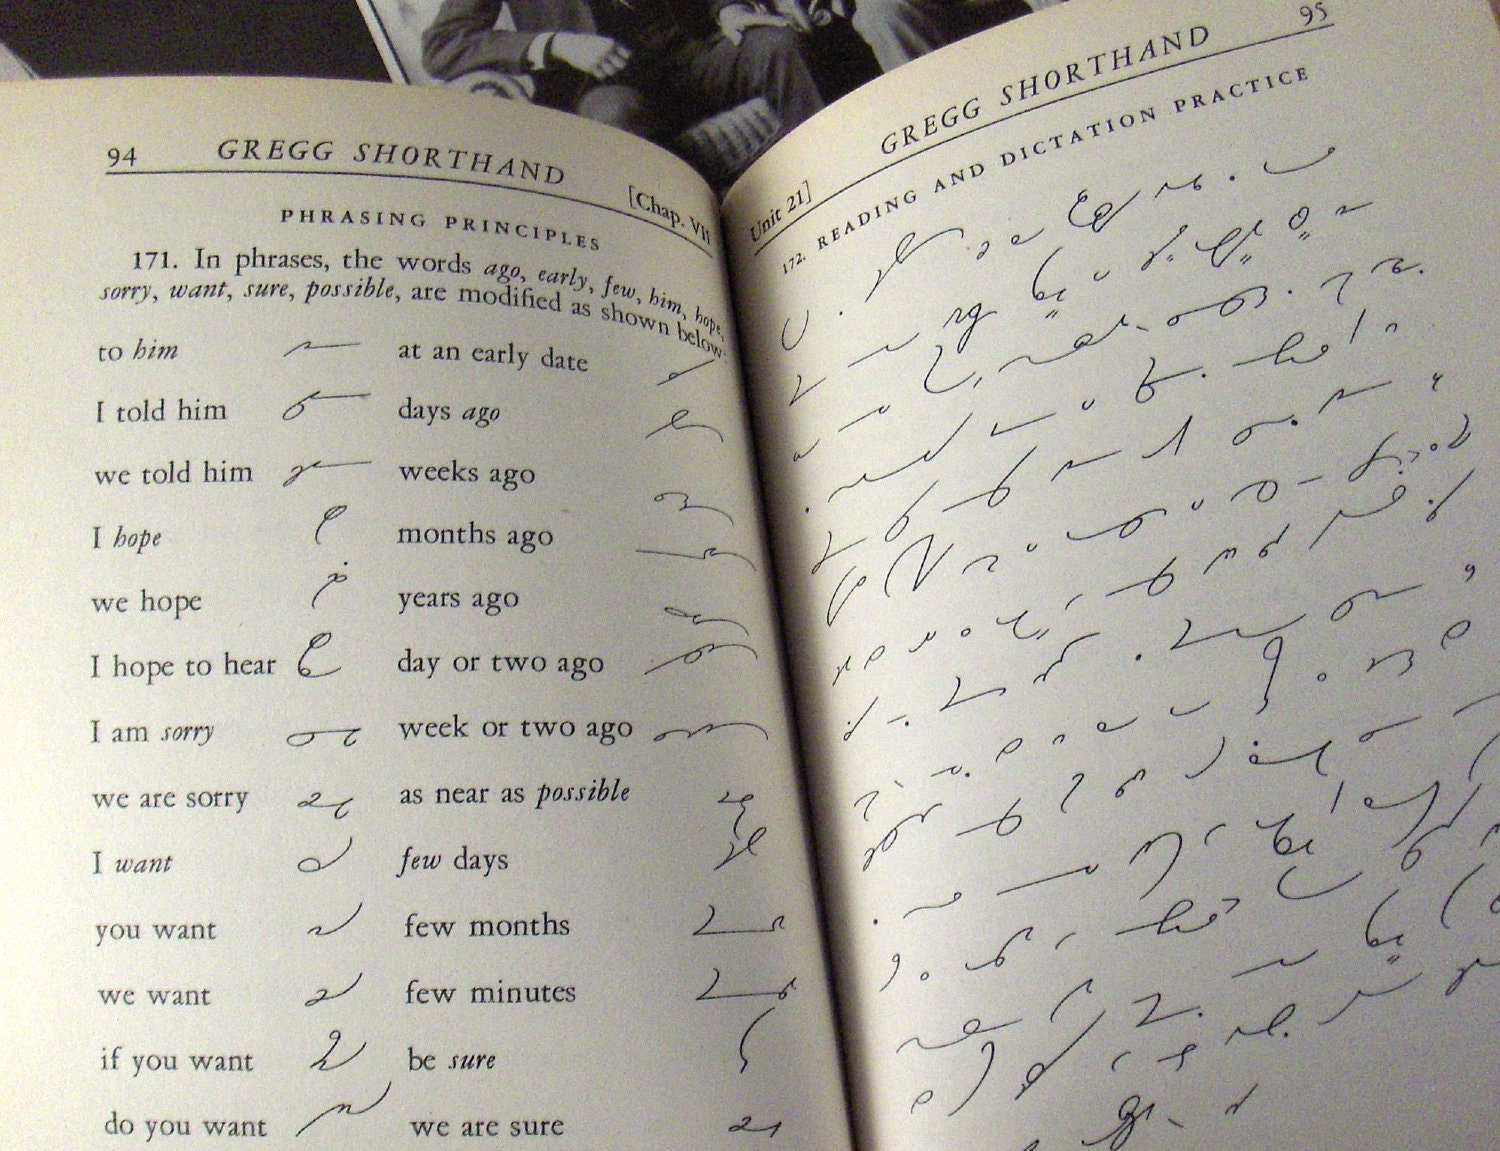 Vintage Book Gregg Shorthand Anniversary Edition 1943